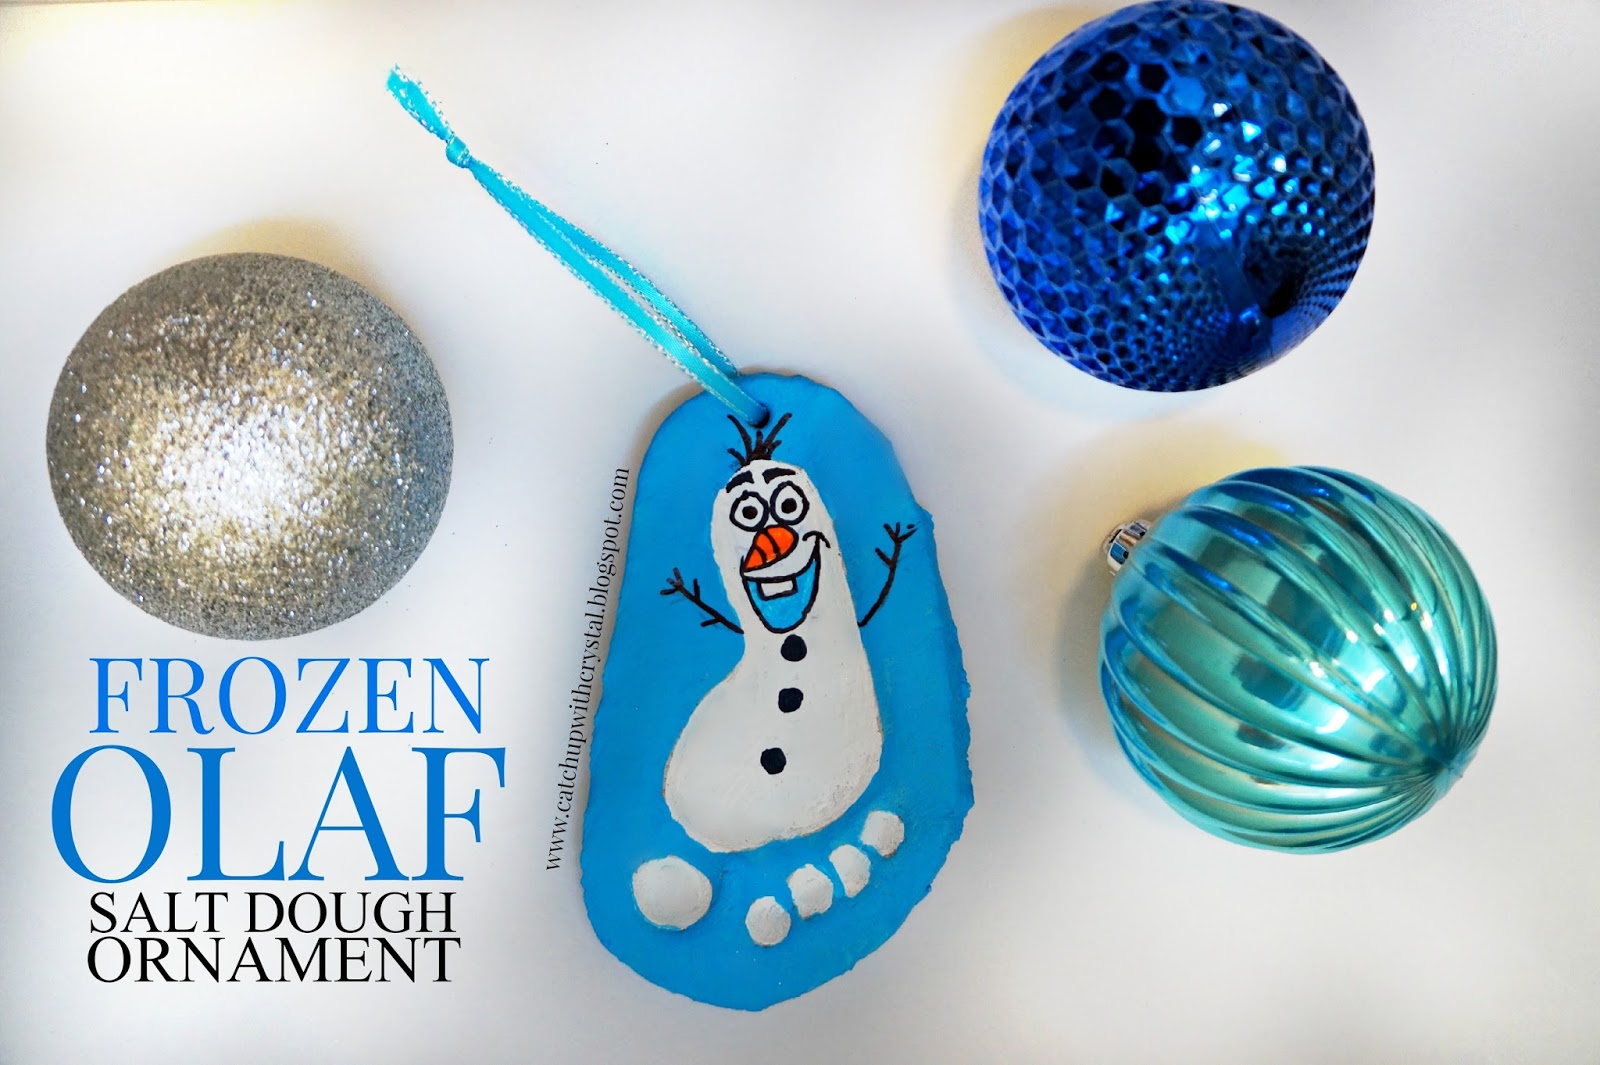 CRYSTAL AND KIDS: Frozen Olaf Salt Dough Ornament